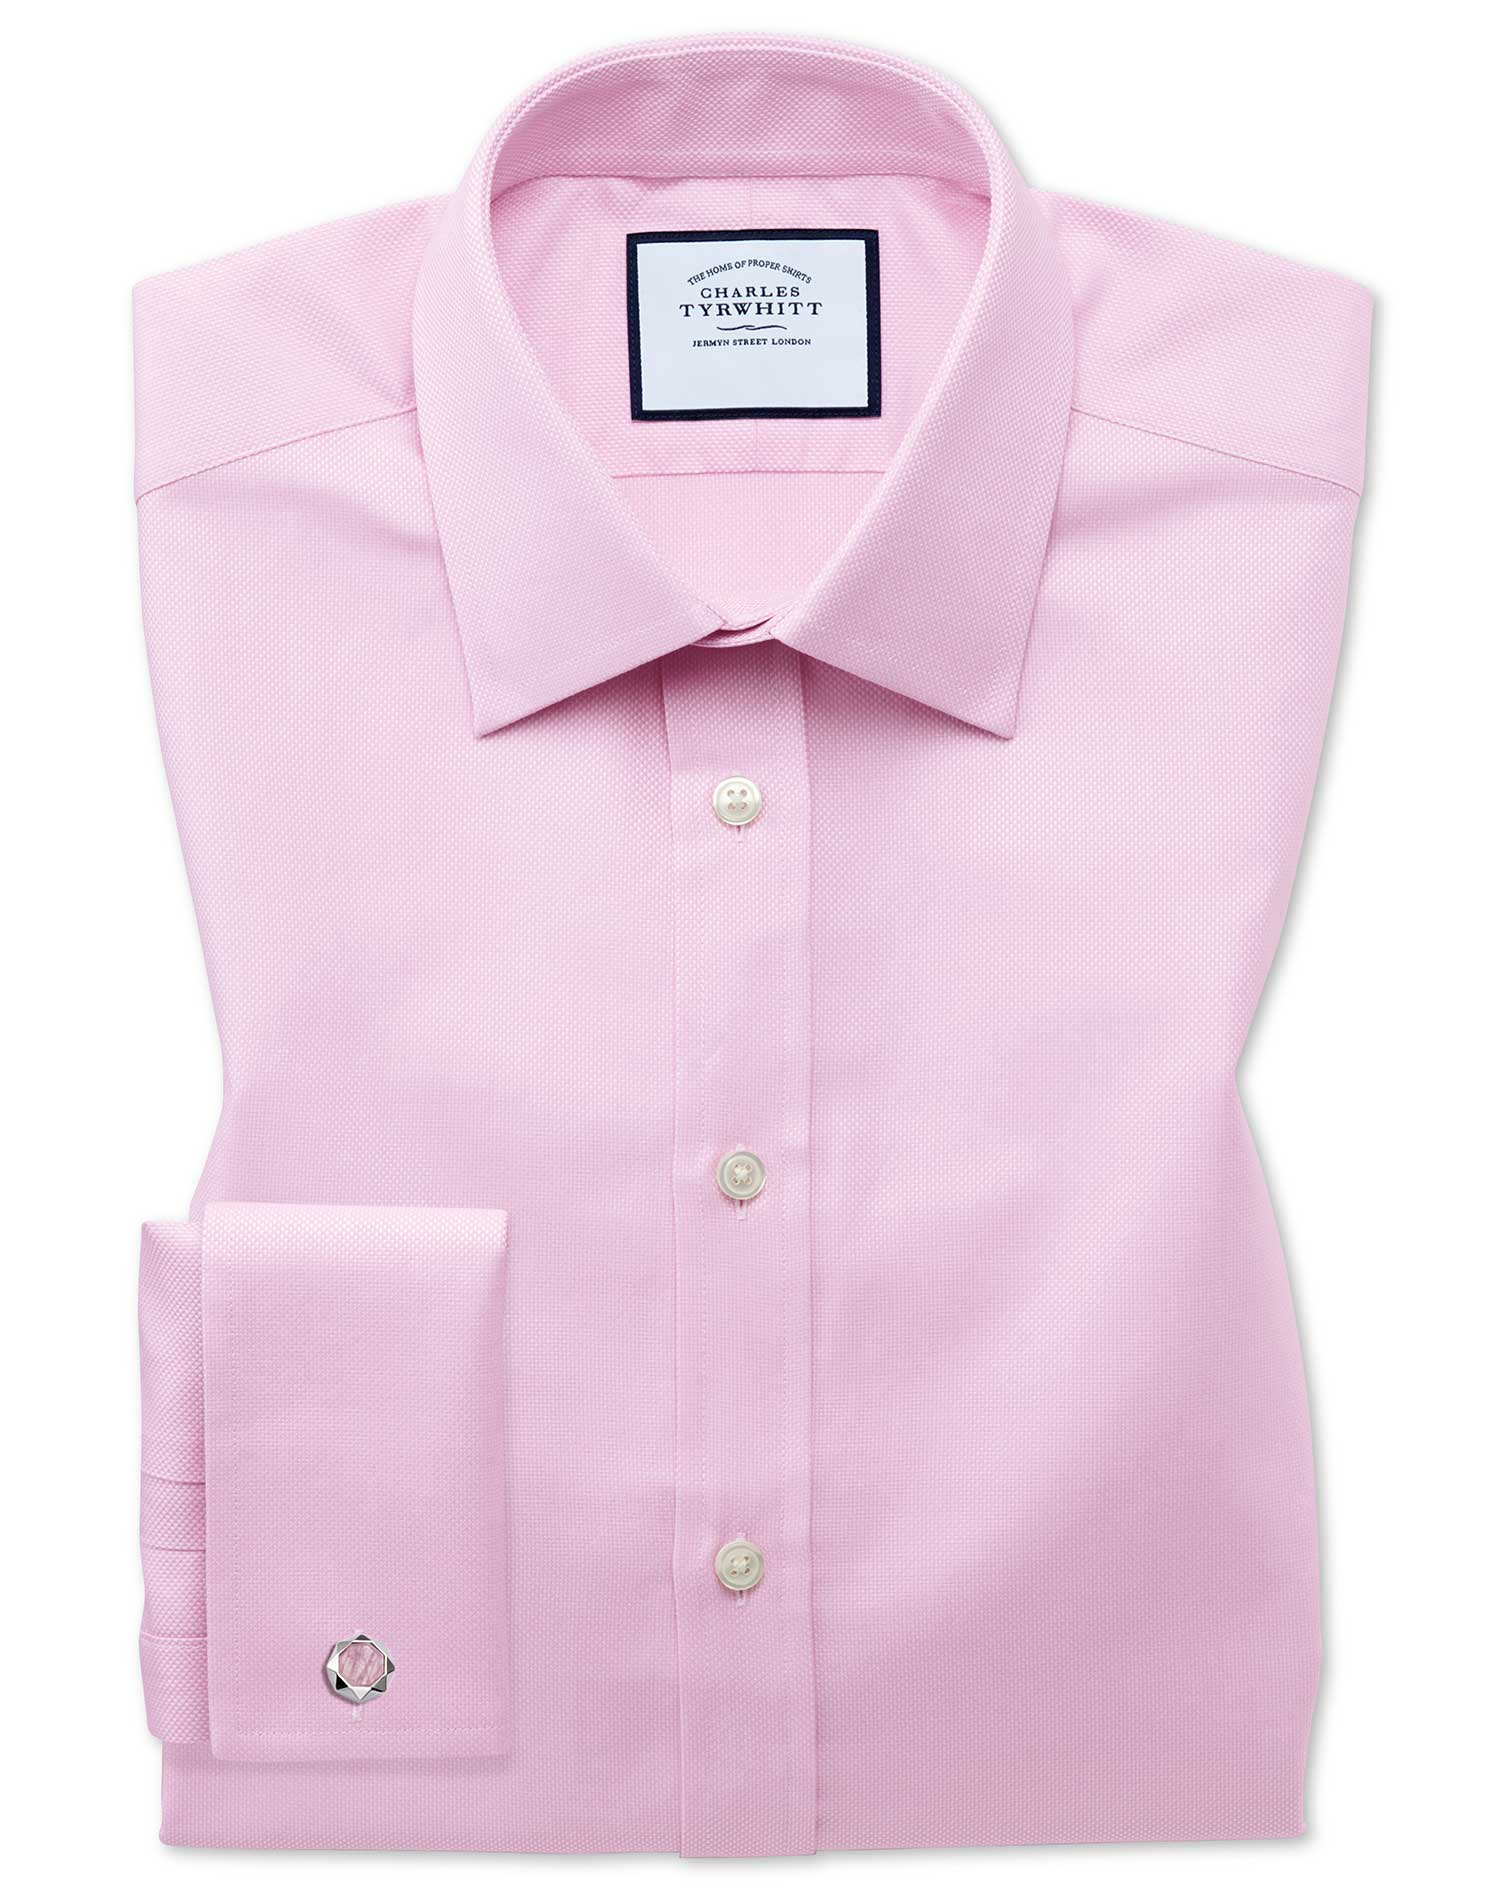 Slim Fit Egyptian Cotton Royal Oxford Pink Formal Shirt Double Cuff Size 16/36 by Charles Tyrwhitt